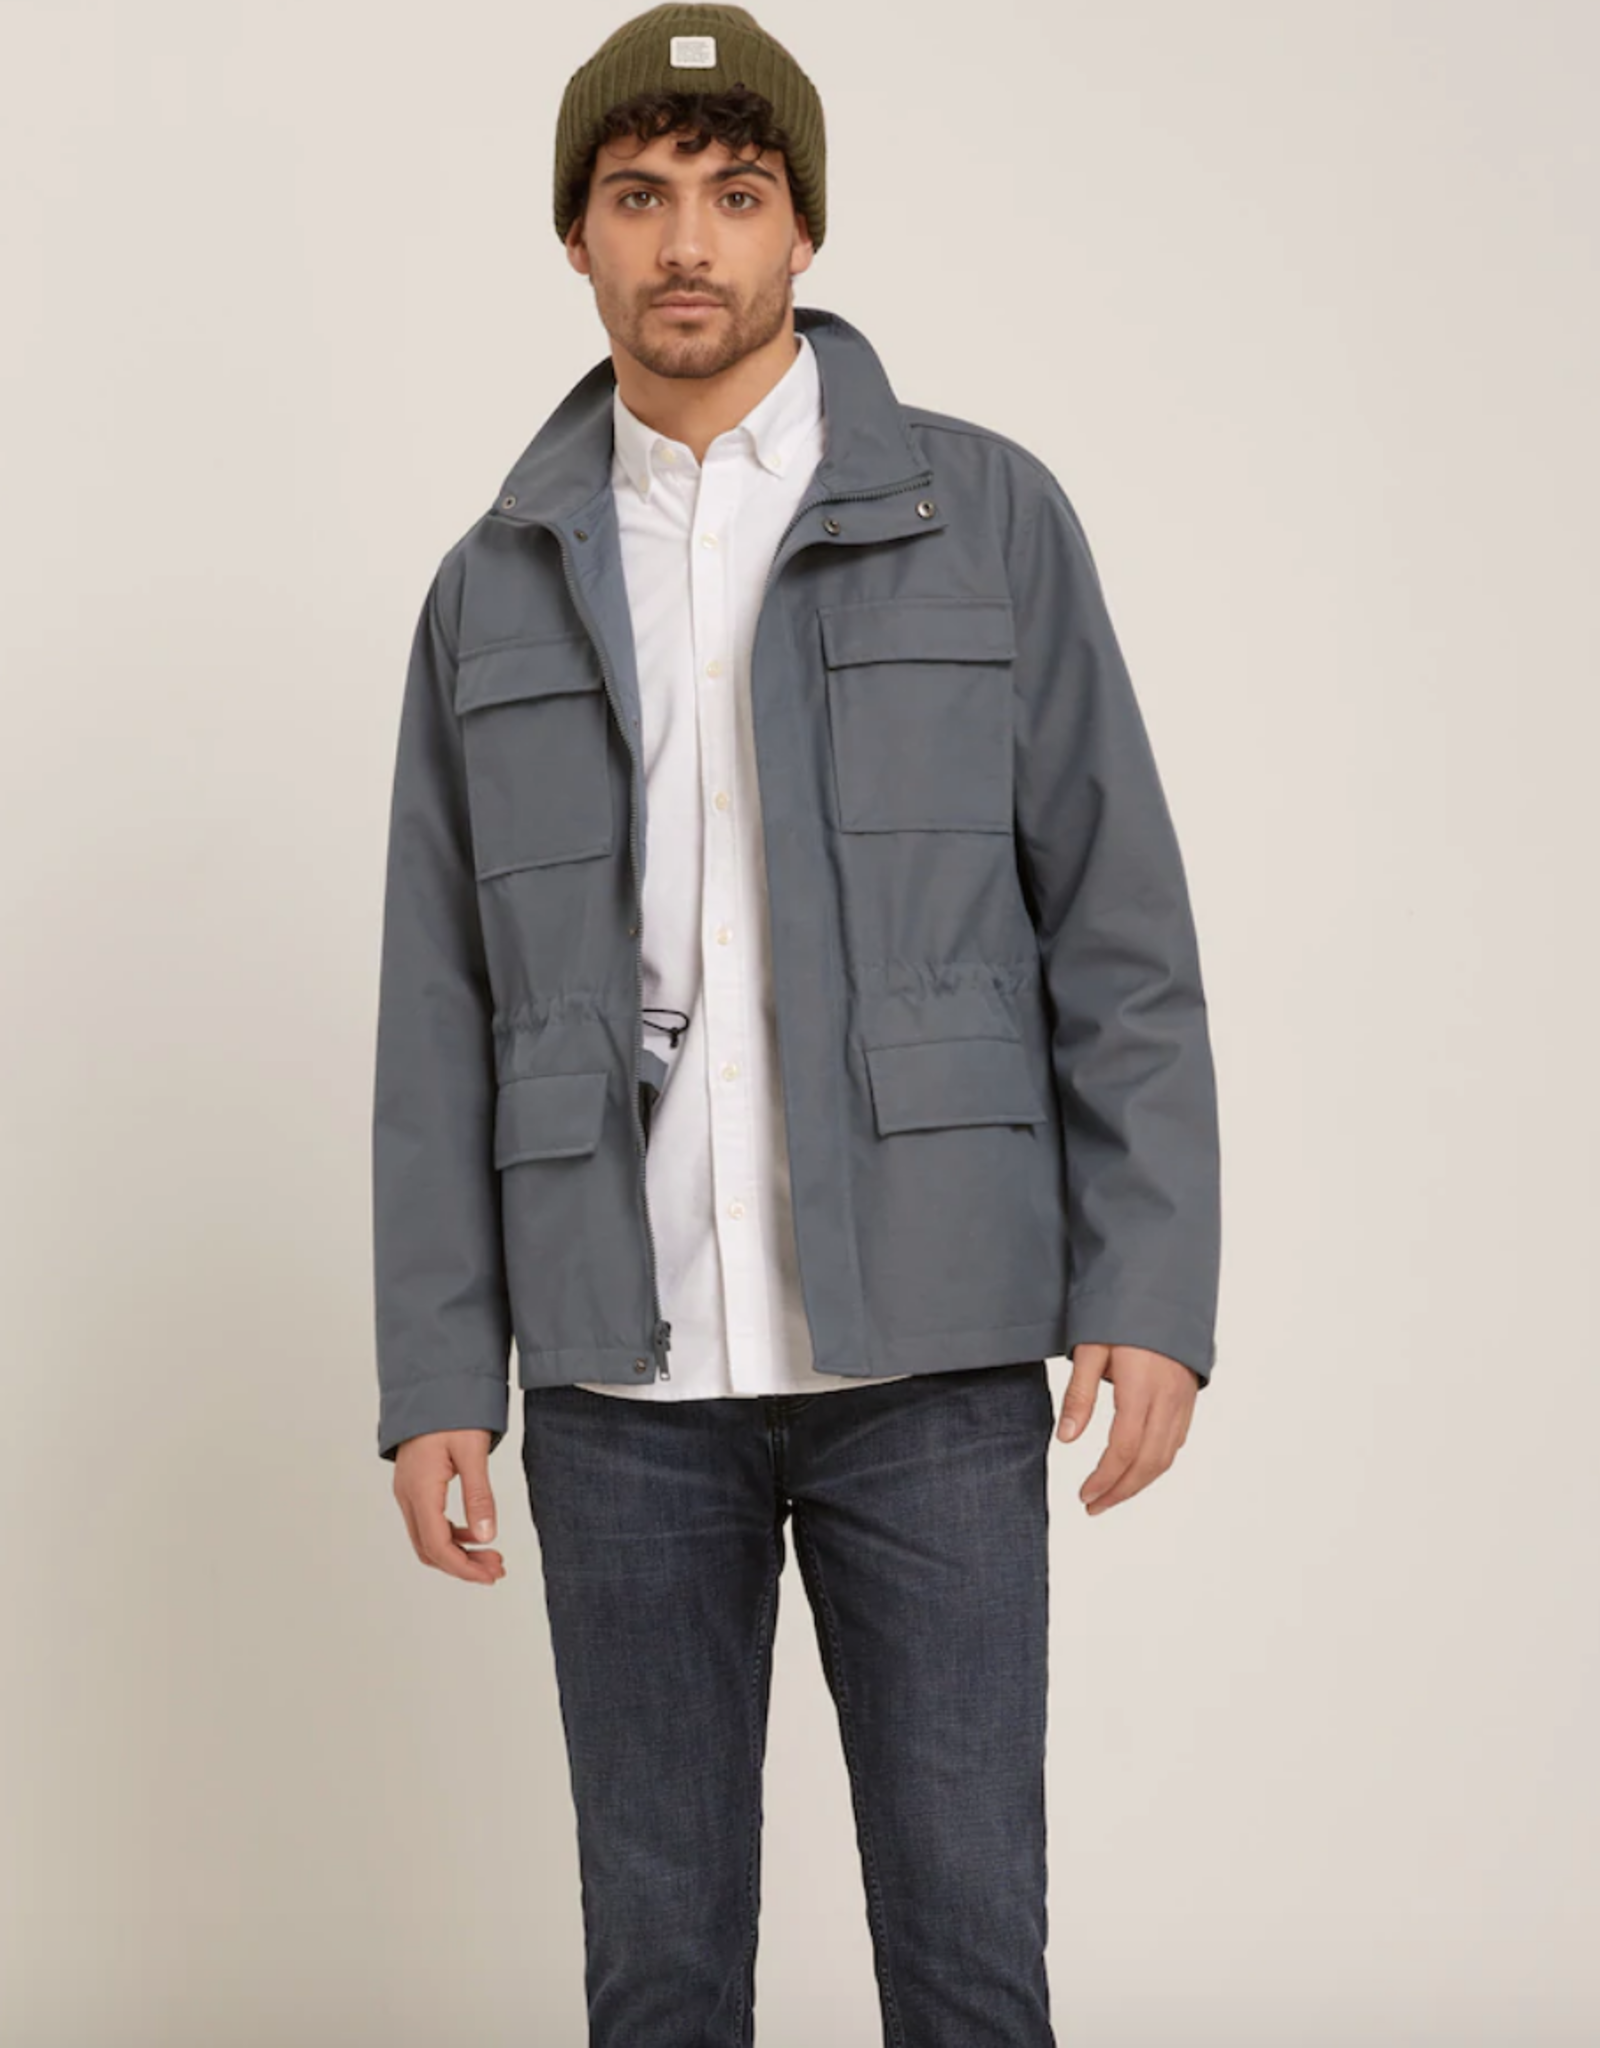 Frank & Oak Field Jacket Charcoal